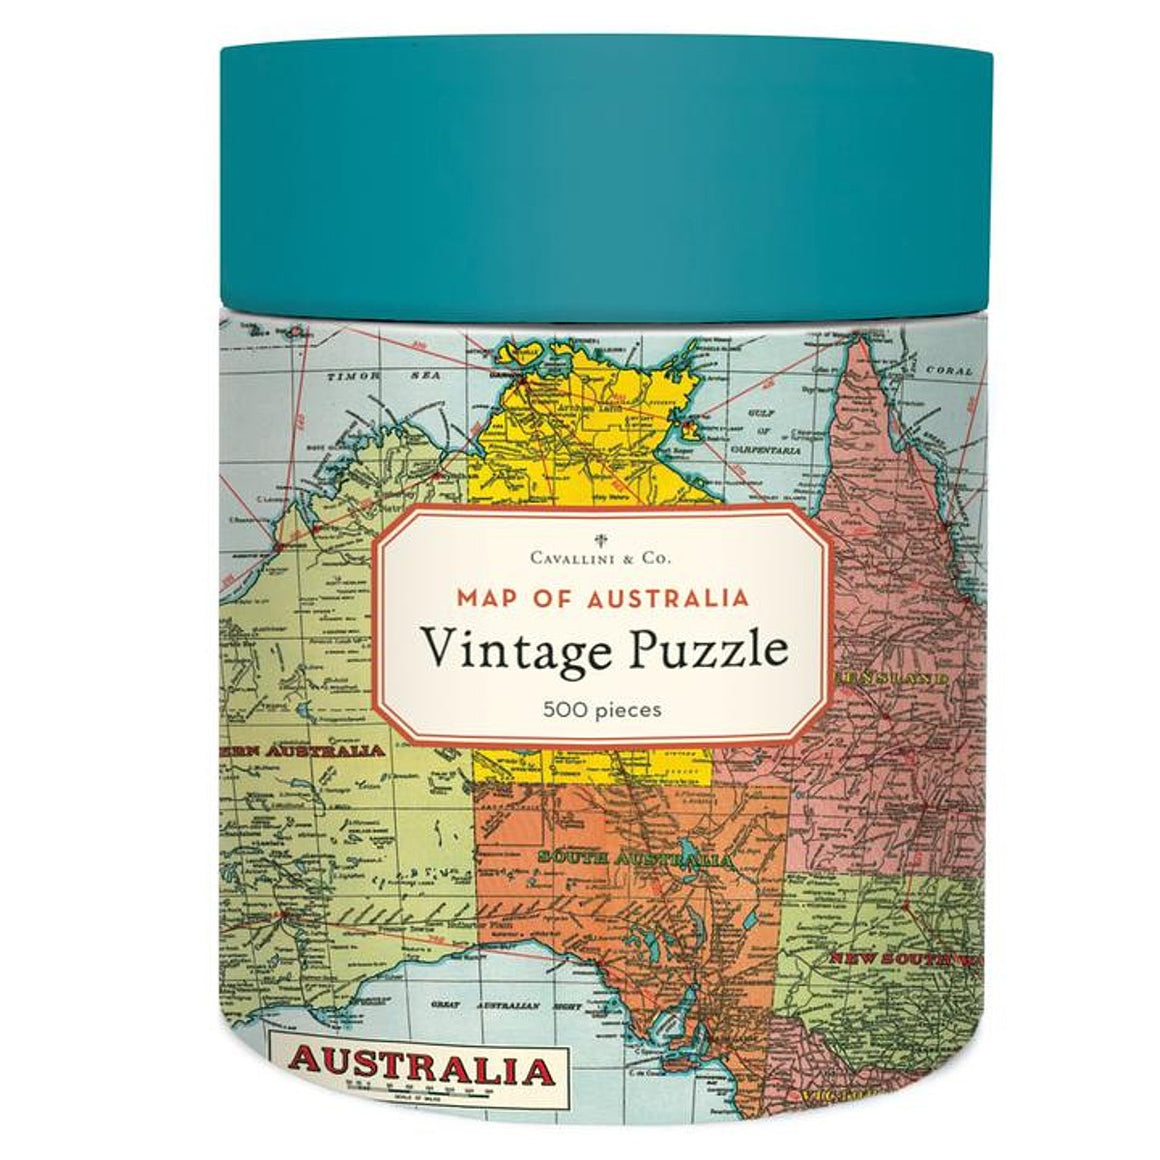 A colourful cylindrical Puzzle box, featuring a collage of iconic vintage Map of Australia.